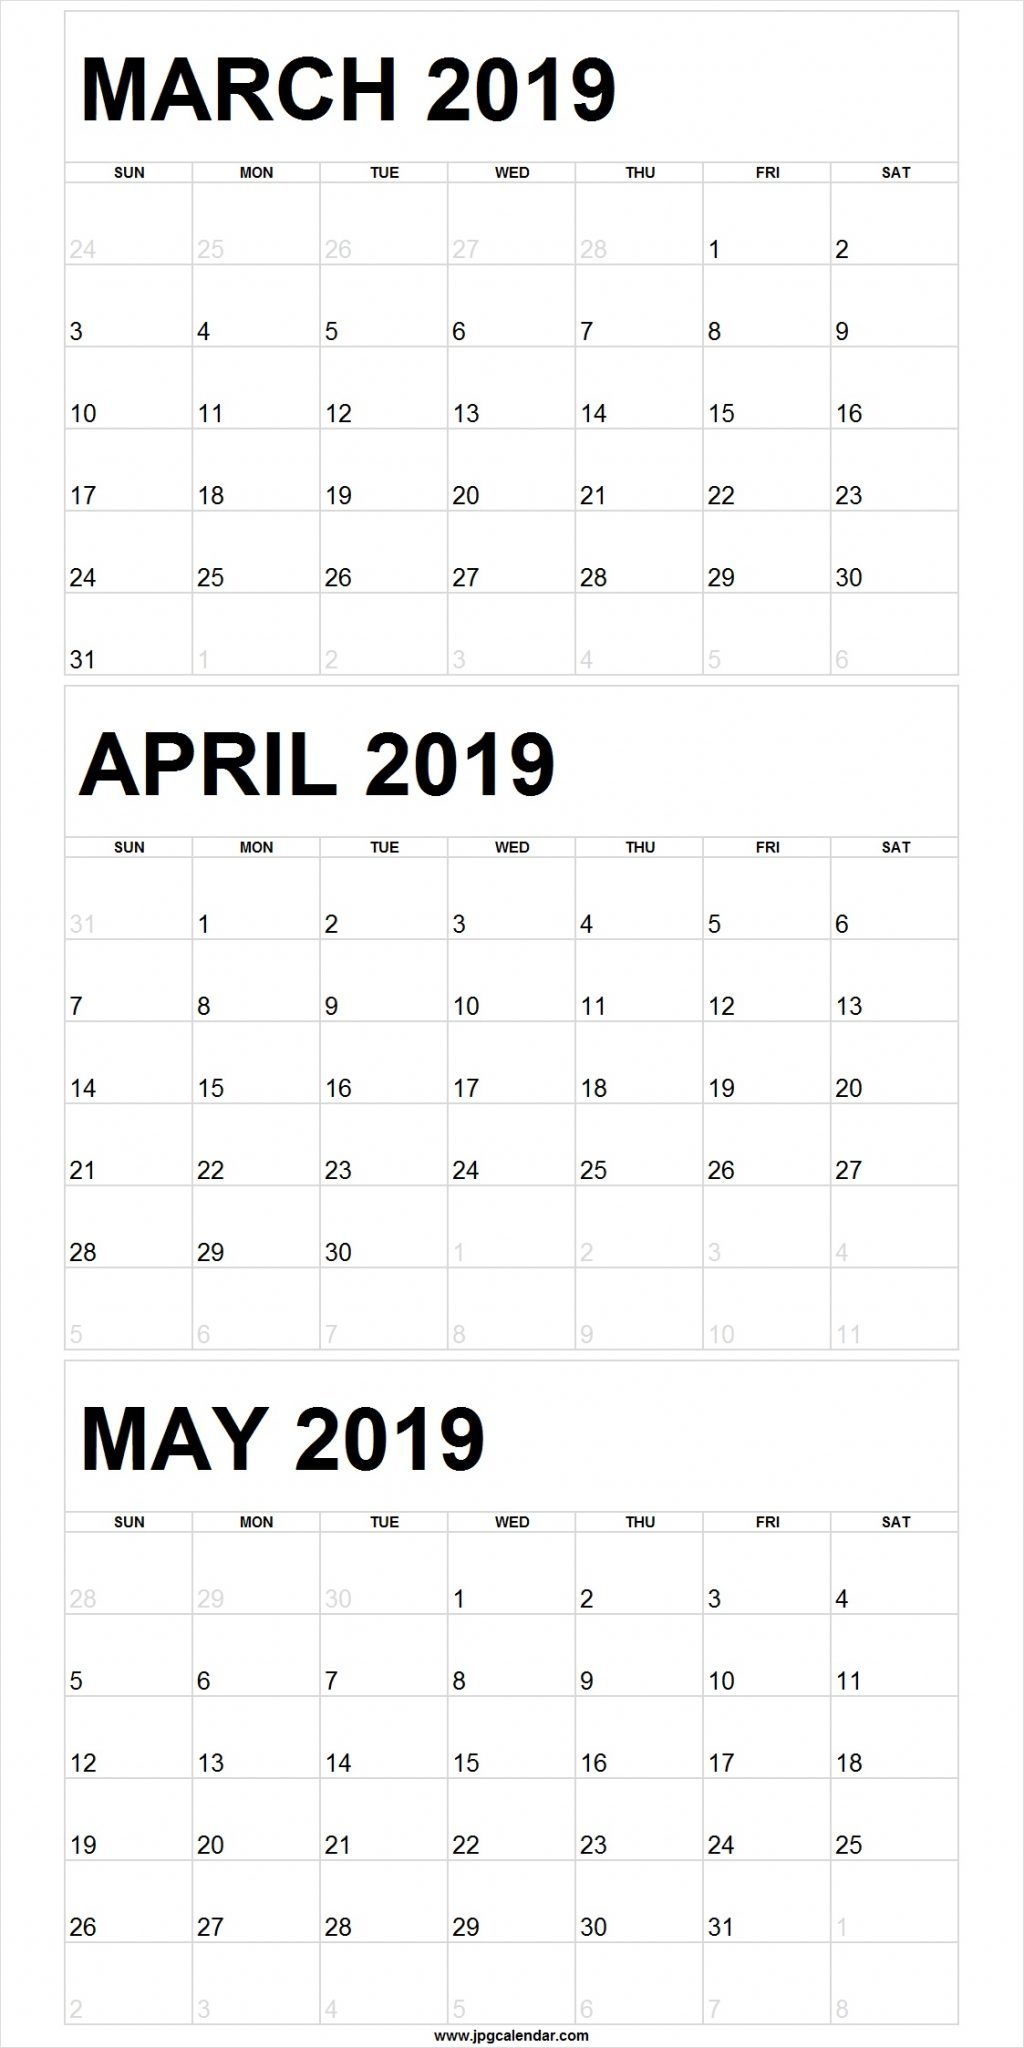 Blank March To May 2019 Calendar Printable | 250+ Free Monthly pertaining to 3 Month Calendar Templates May June July